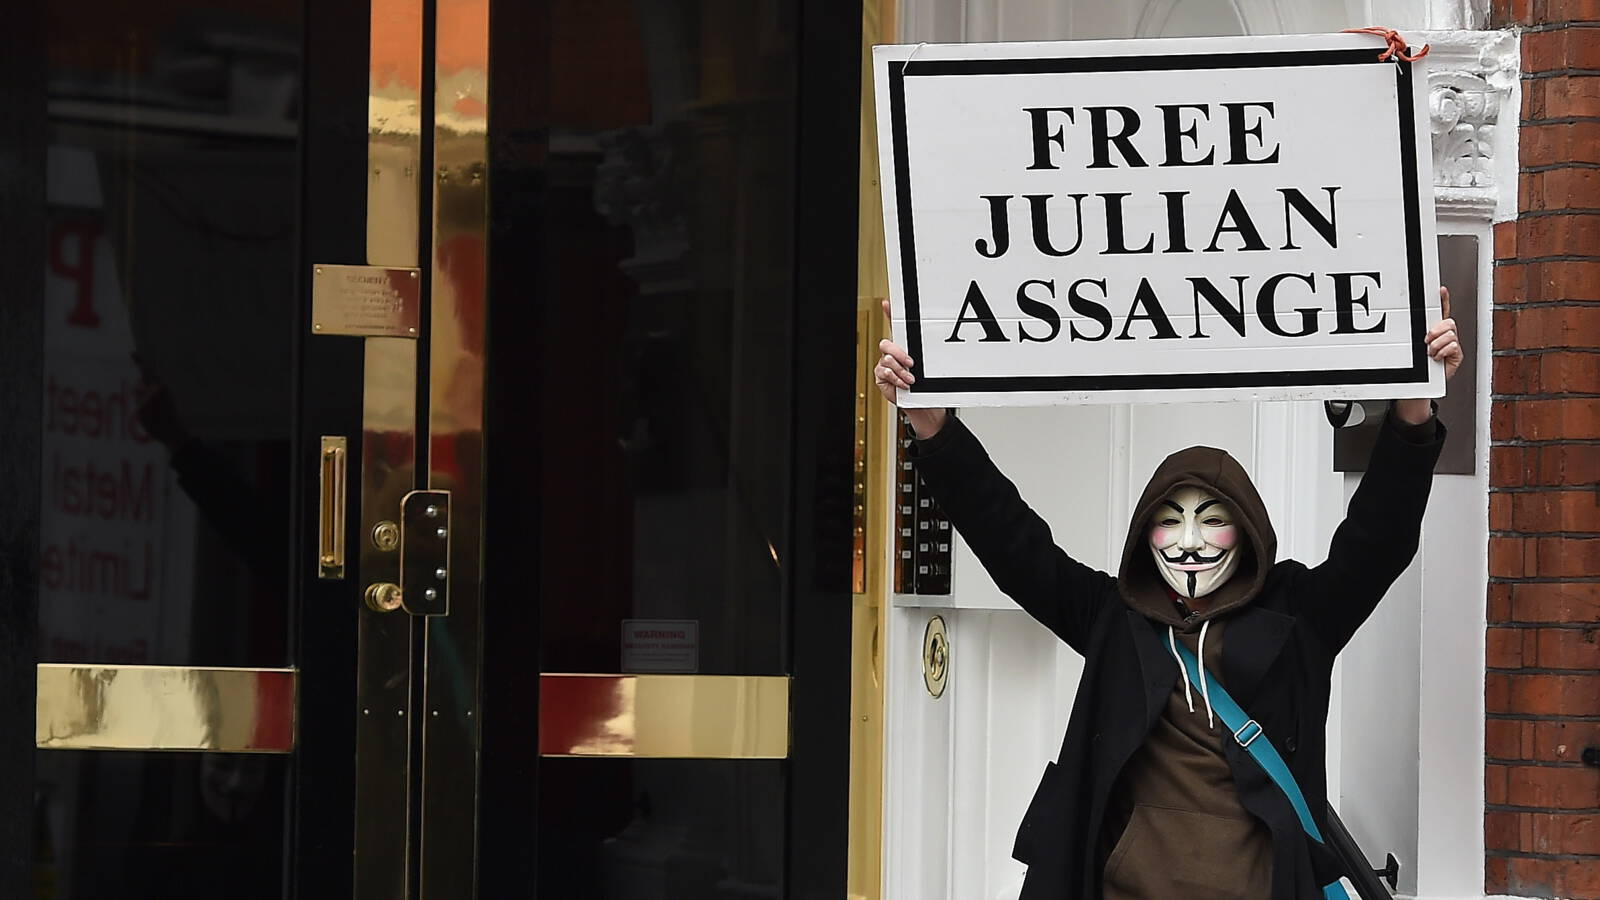 A London demonstrator demands freedom for WikiLeaks founder Julian Assange, ANP photo